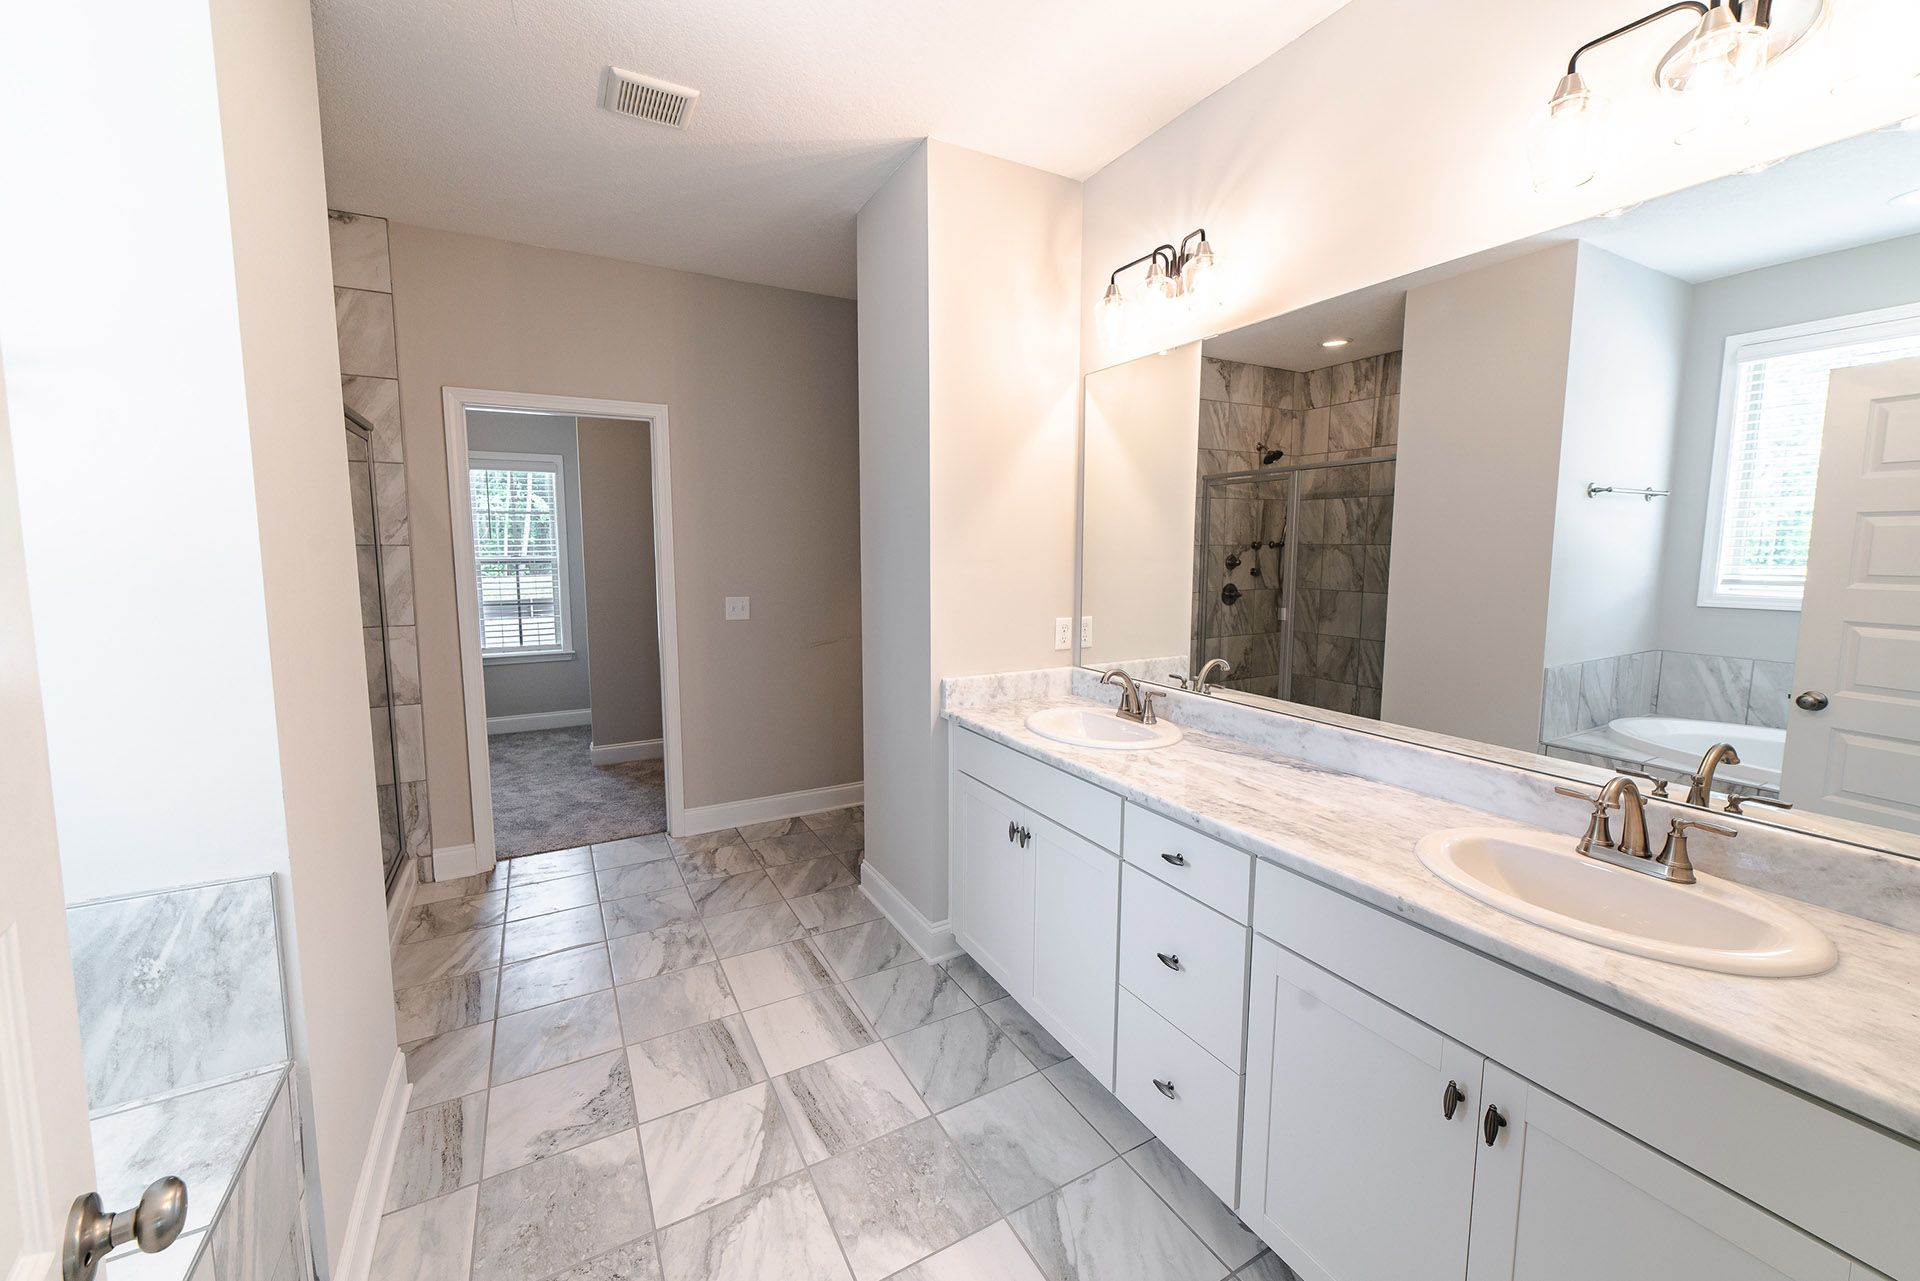 Bathroom featured in the Aspen By Grayhawk Homes in Columbus, GA